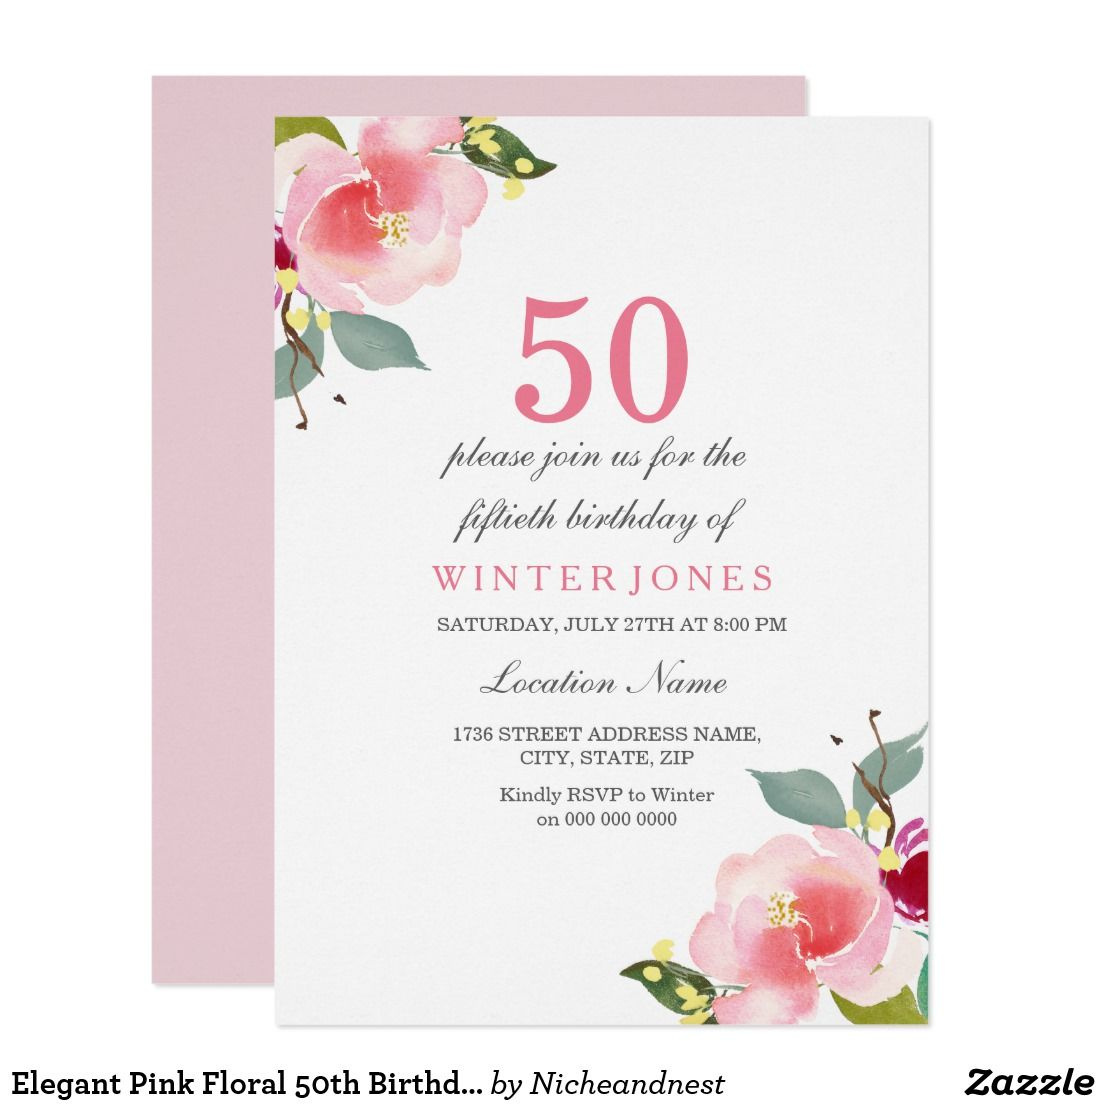 Elegant Pink Floral 50th Birthday Party Invitation | Pinterest ...